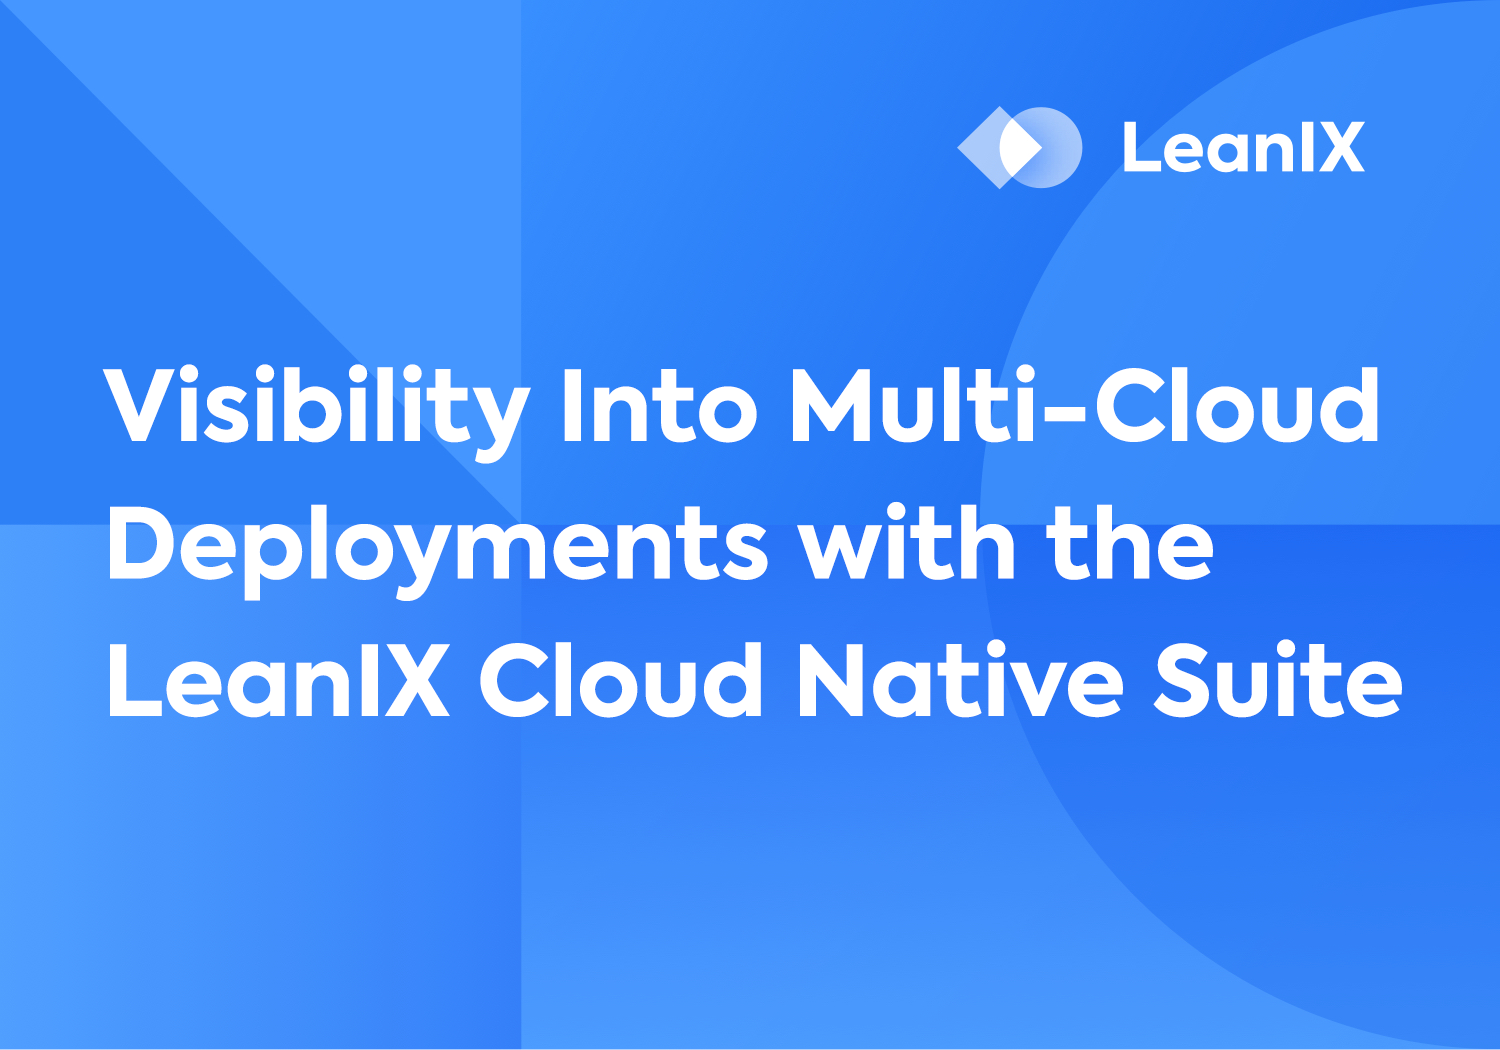 Webinar: Visibility Into Multi-Cloud Deployments with the LeanIX Cloud Native Suite